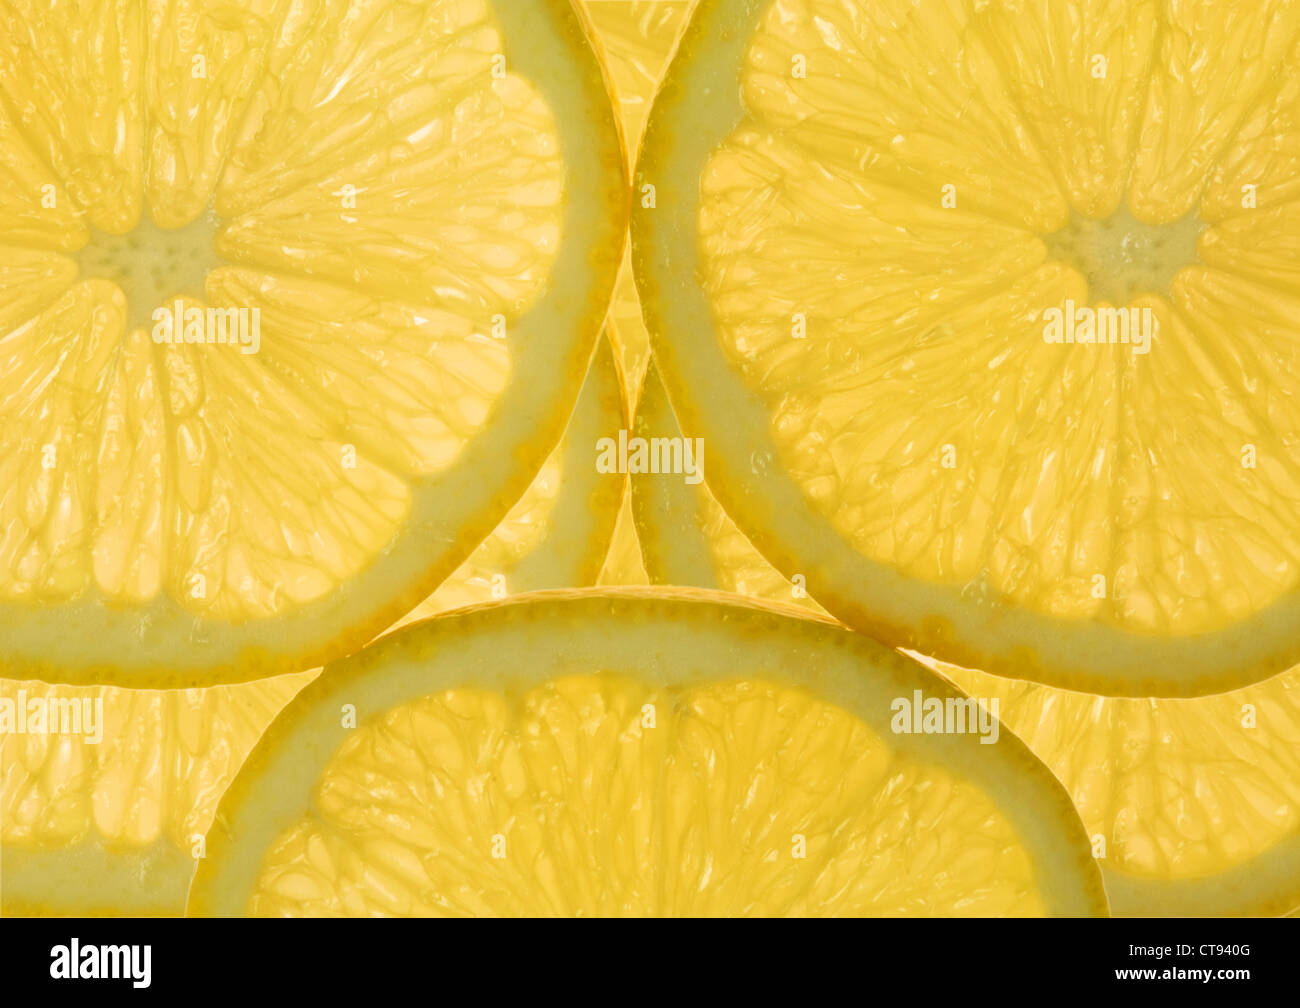 Citrus limon, Lemon - Stock Image